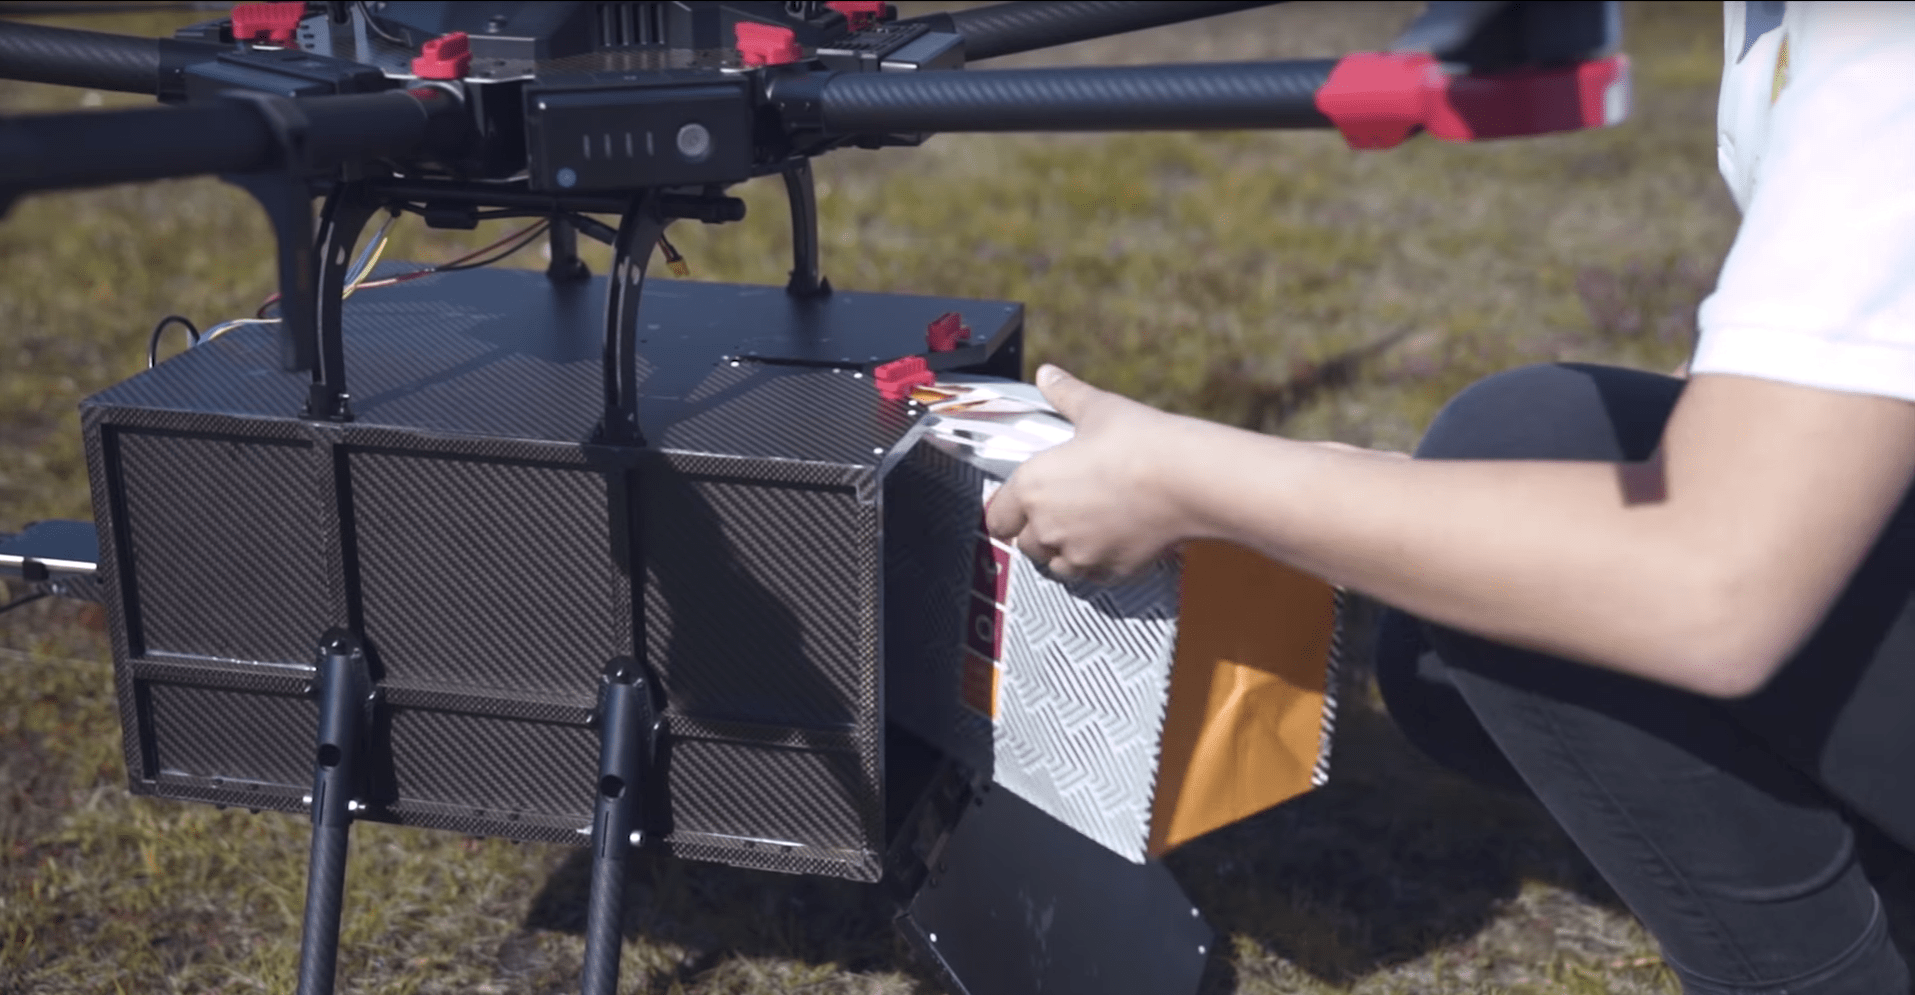 FlyTrex wants you to get really close to those blades